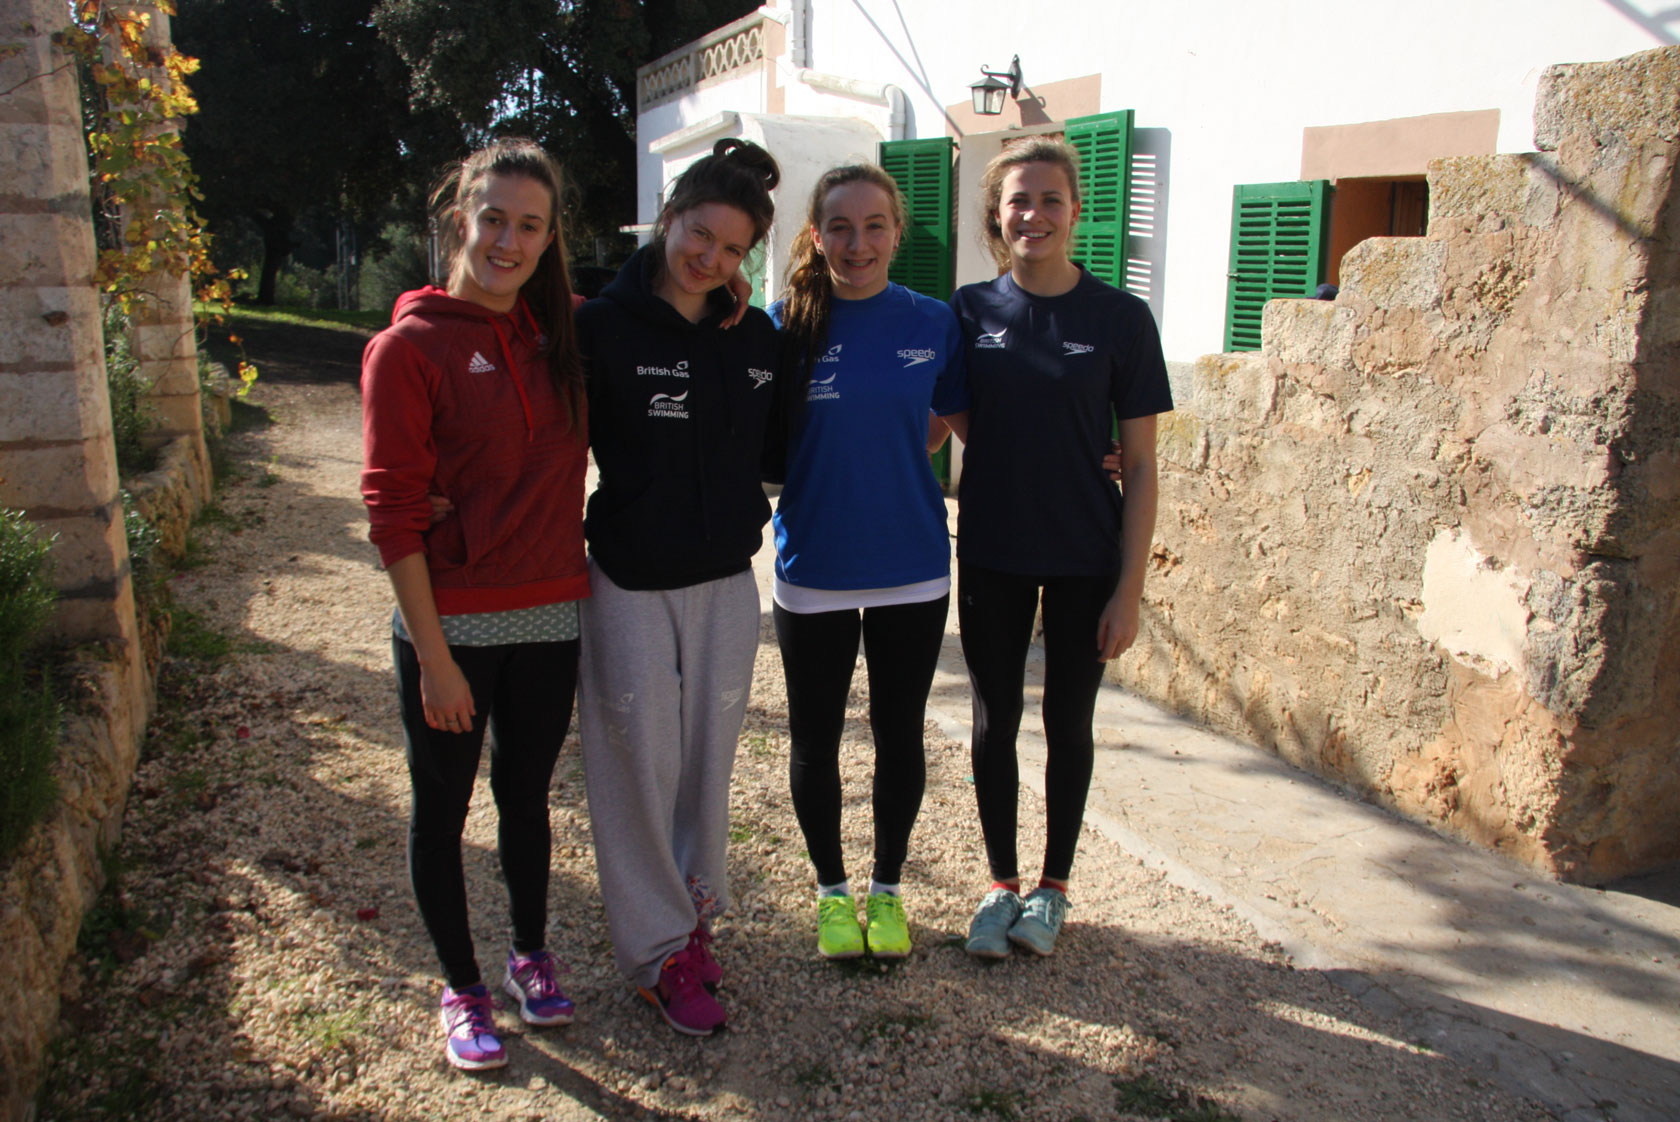 Katie Clark, Olivia Federici, Jodie Cowie and Genevieve Randall